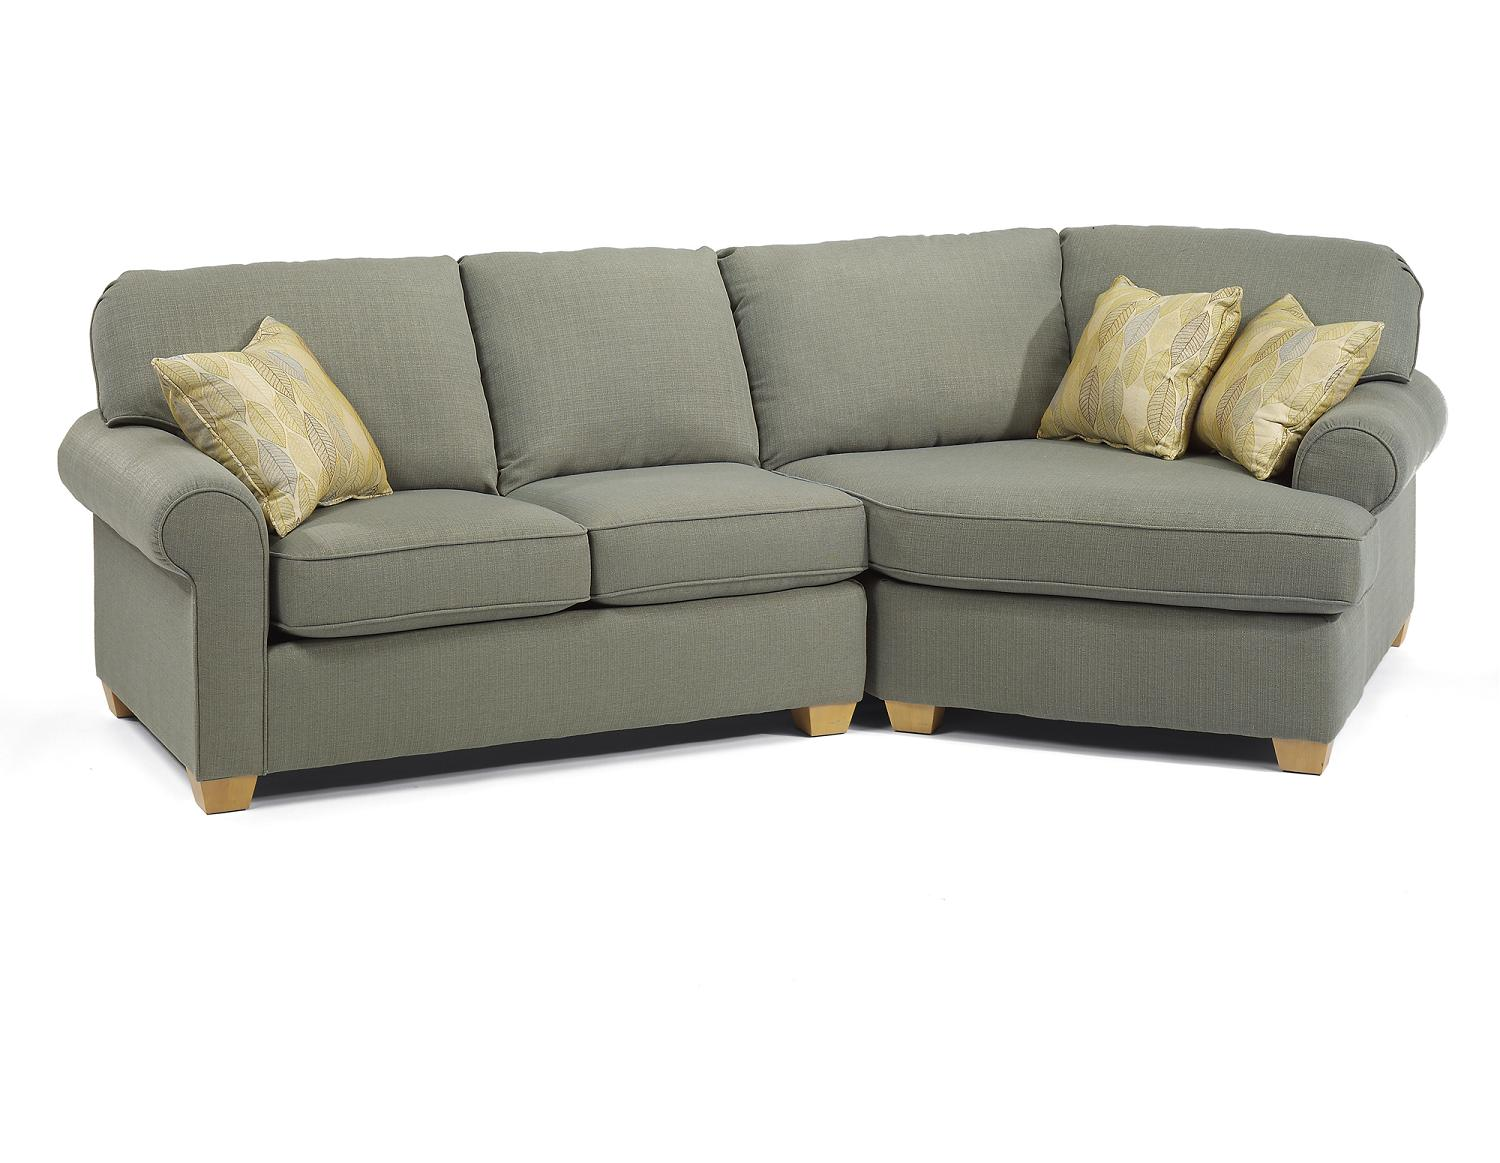 Cheap sectional sofas under 100 couch sofa ideas for Sectional furniture